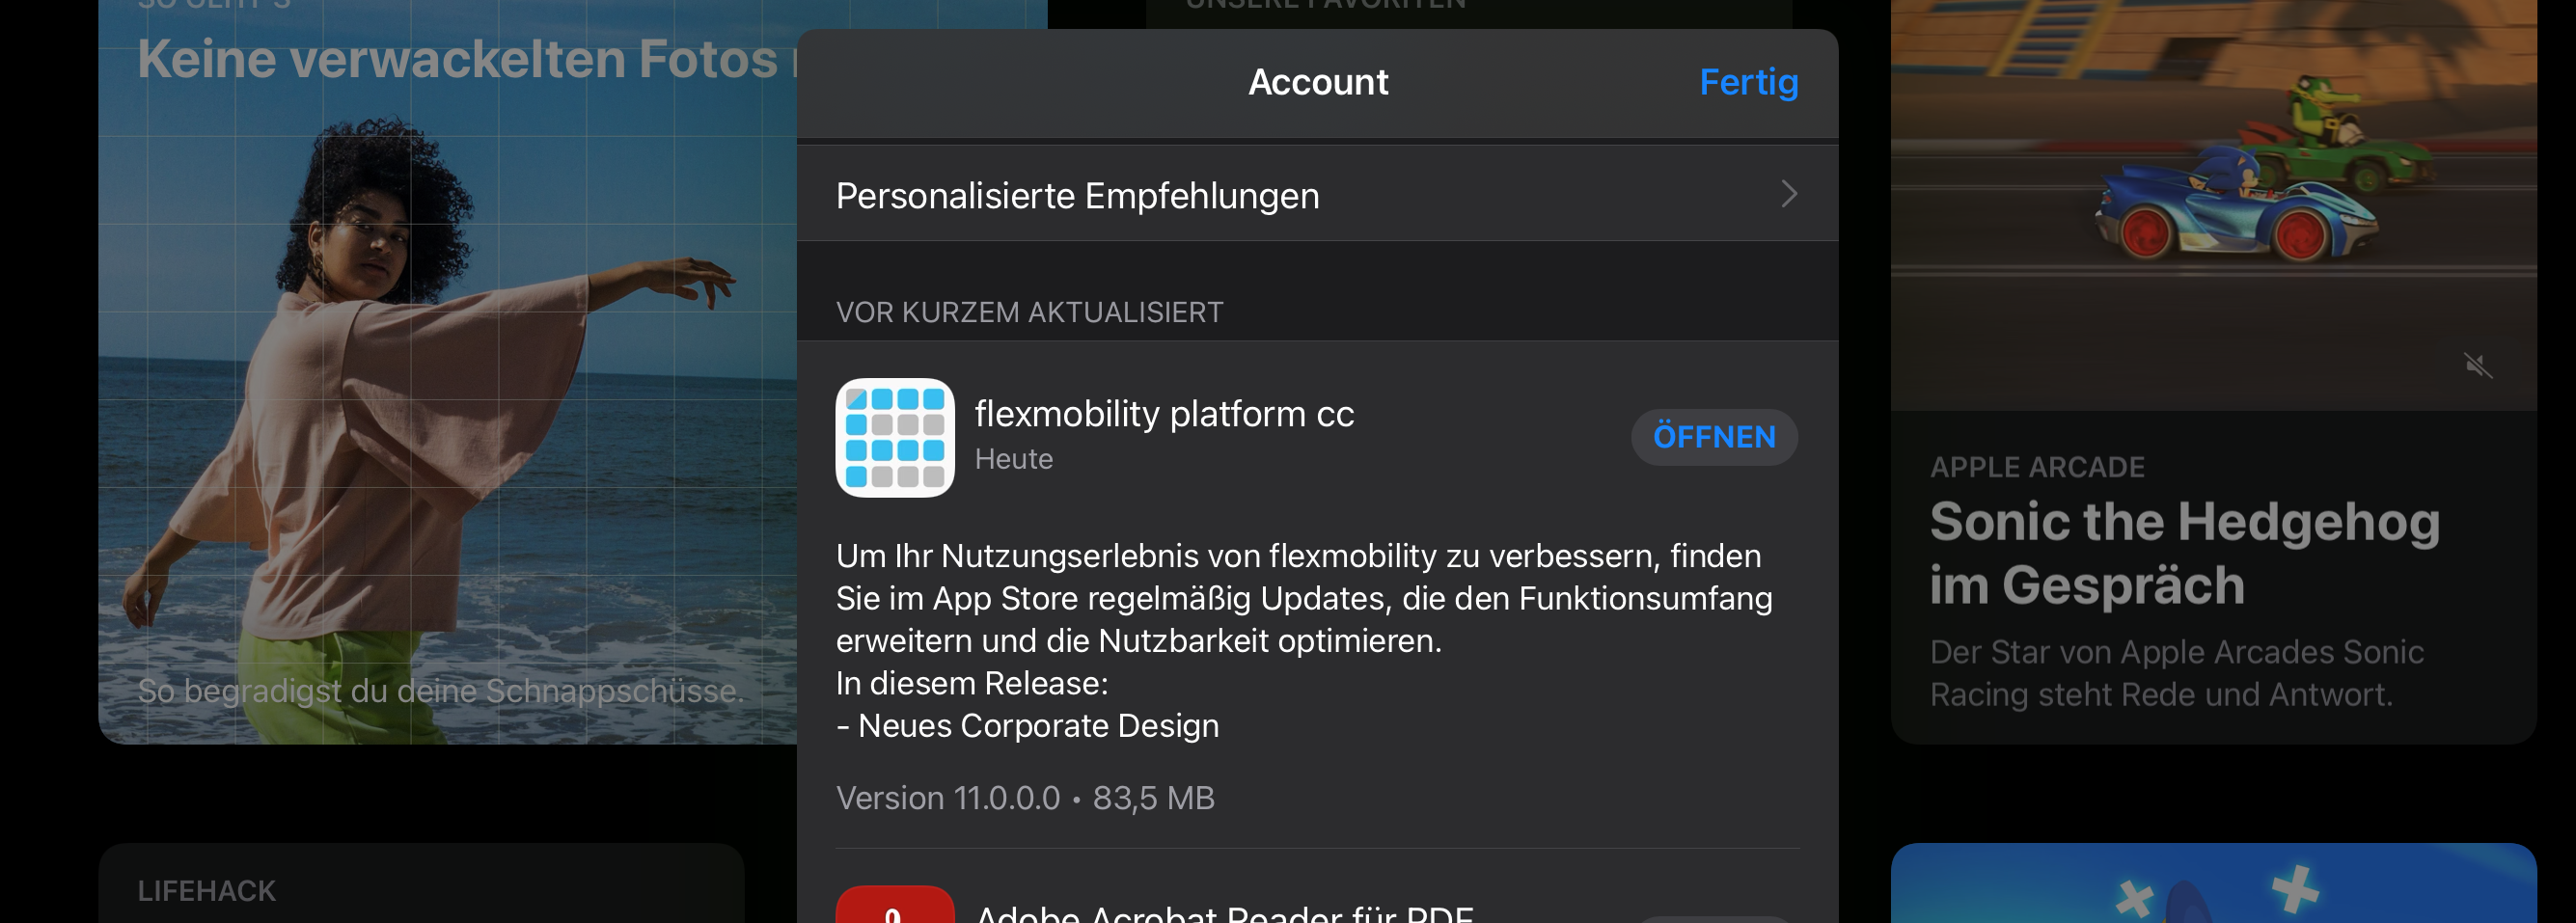 Business Apps Konfiguration flexmobility platform